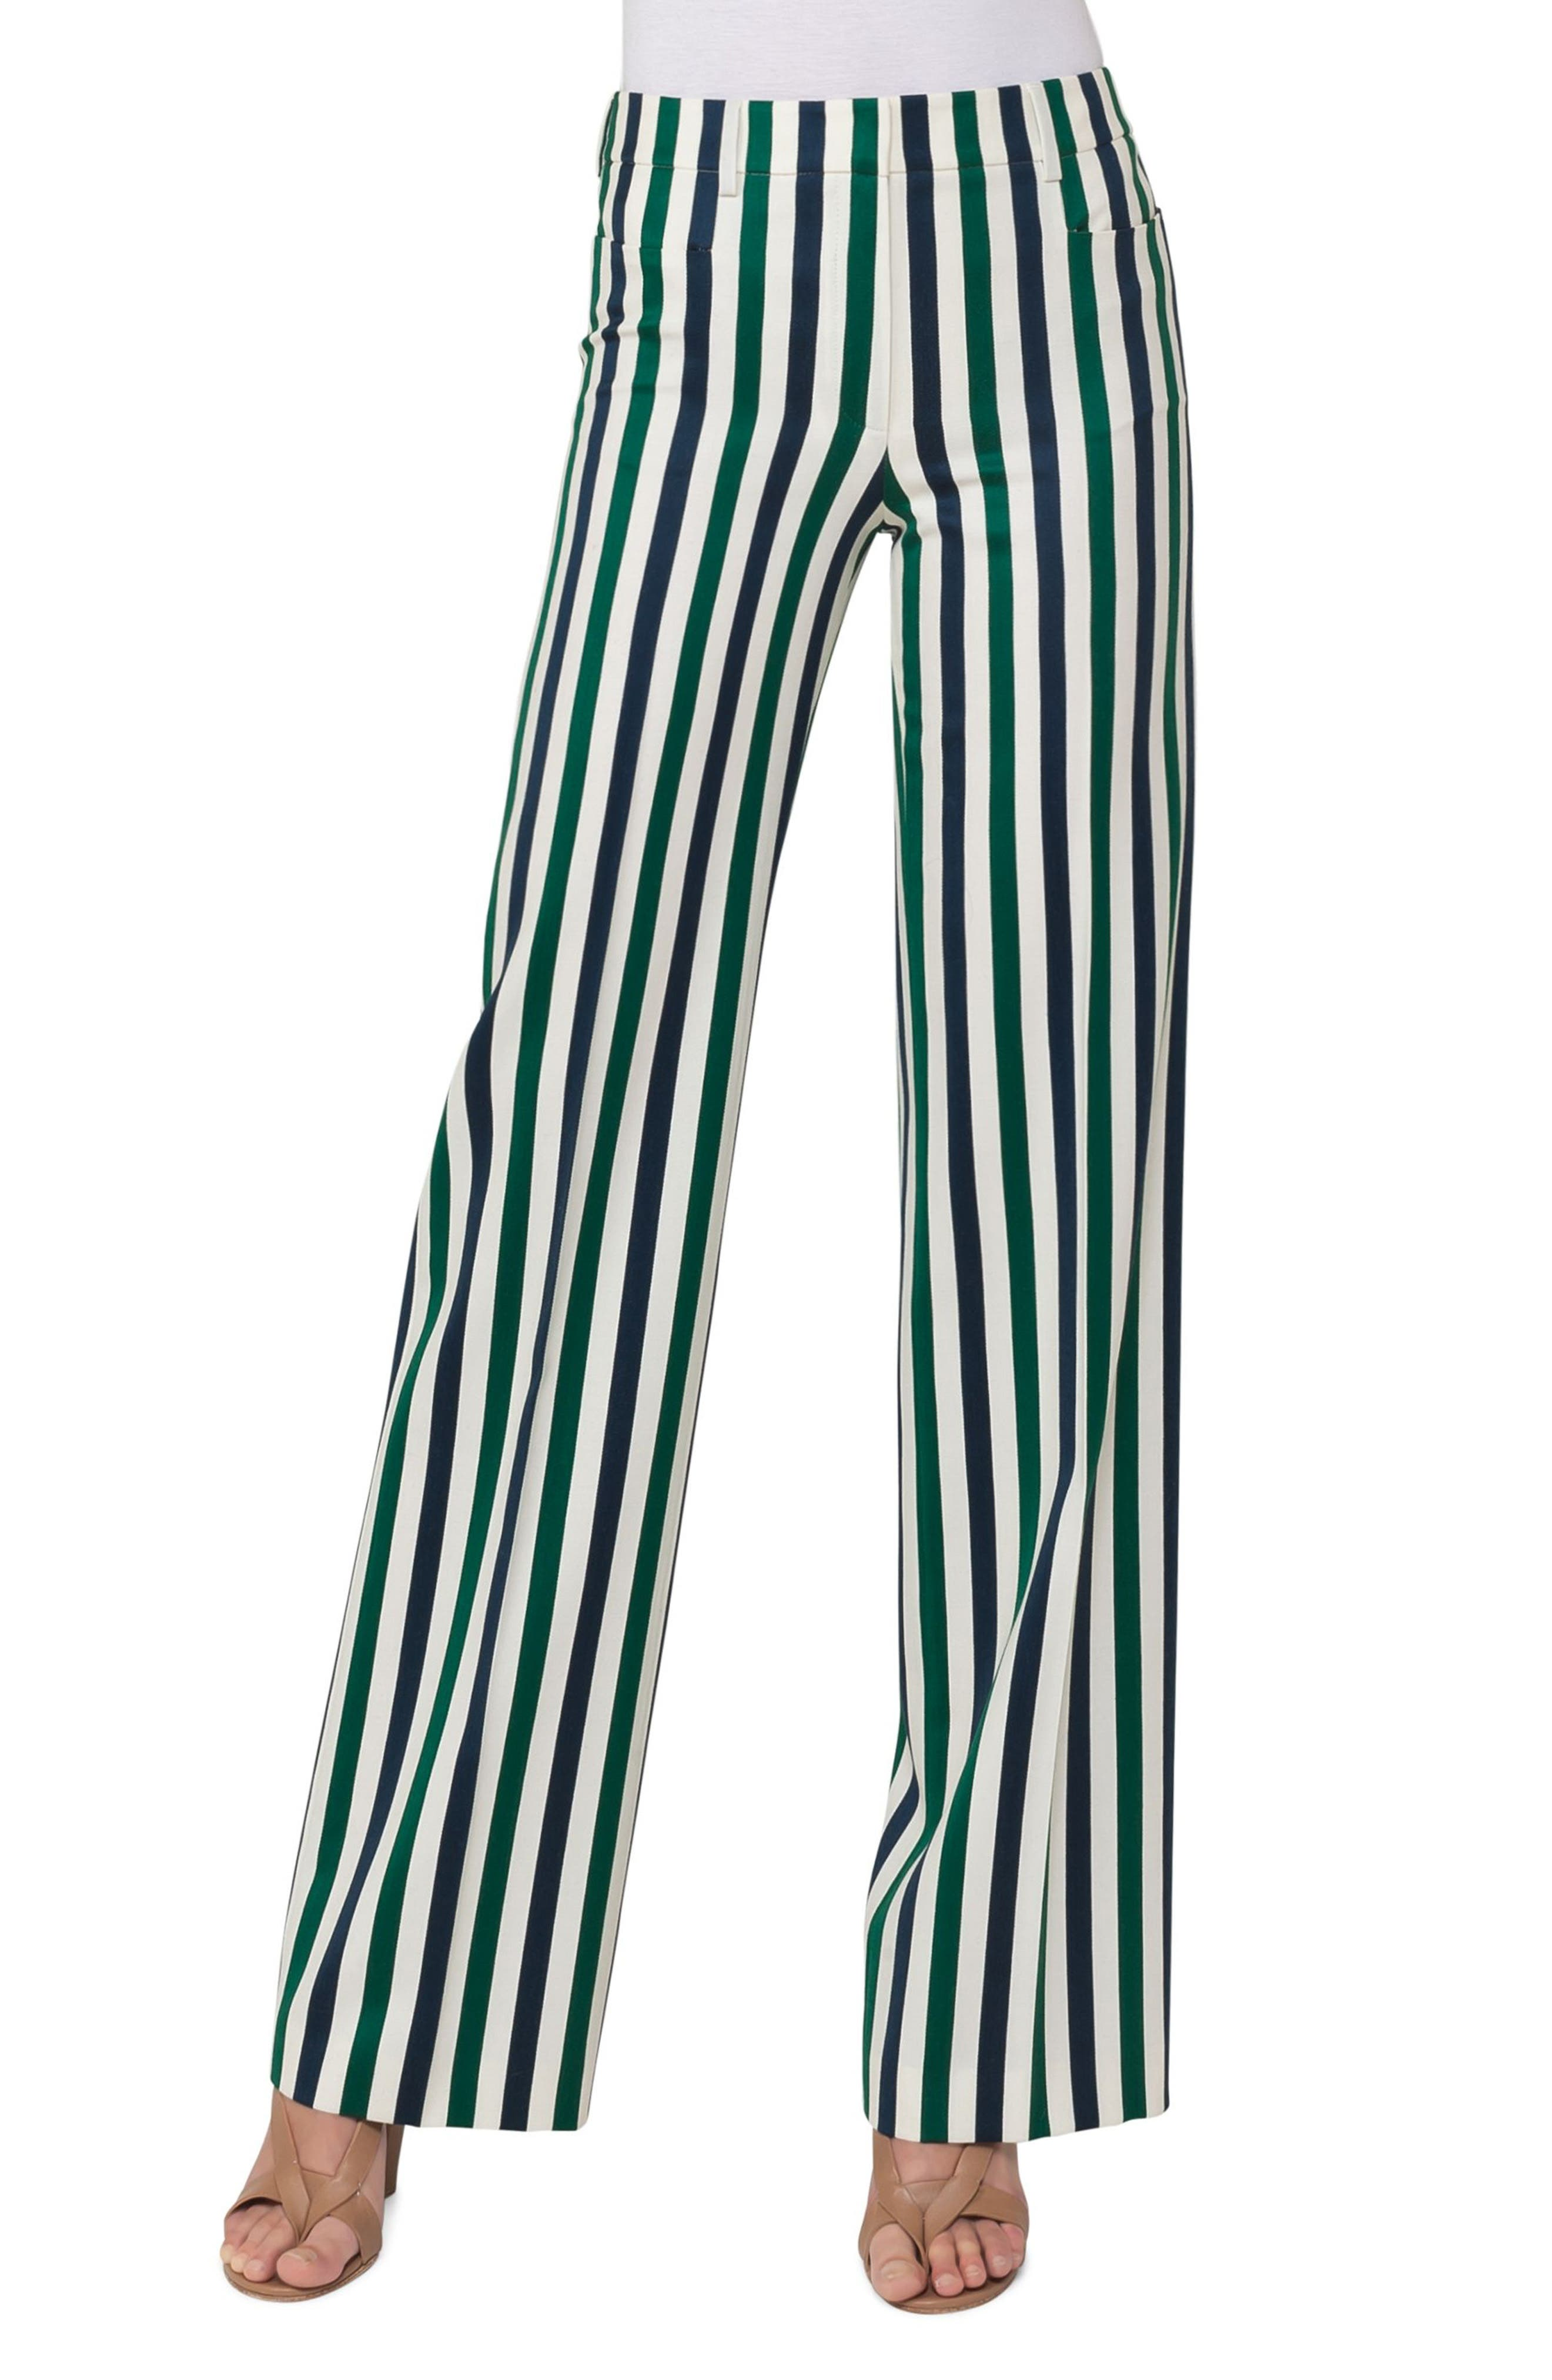 Mikka Stripe Pants,                             Main thumbnail 1, color,                             400